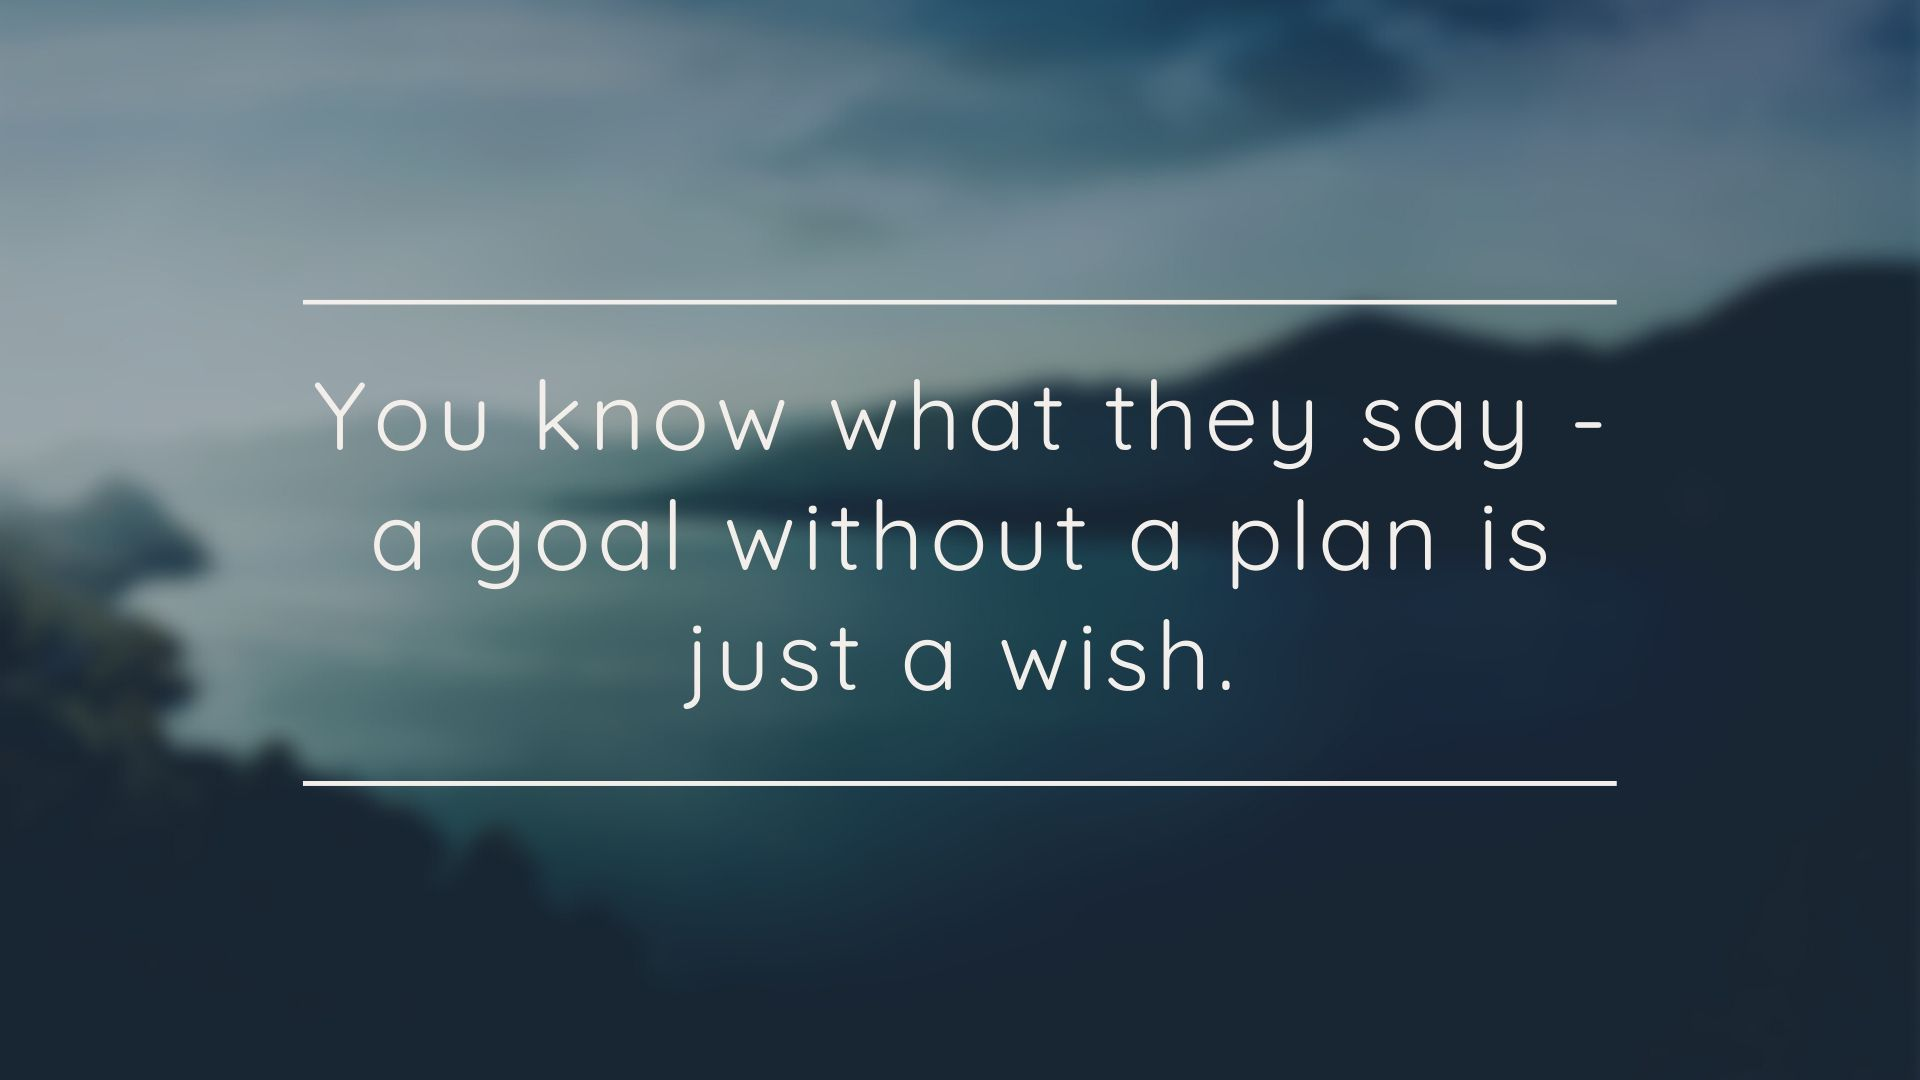 image-quote-goal-without-plan-is-wish